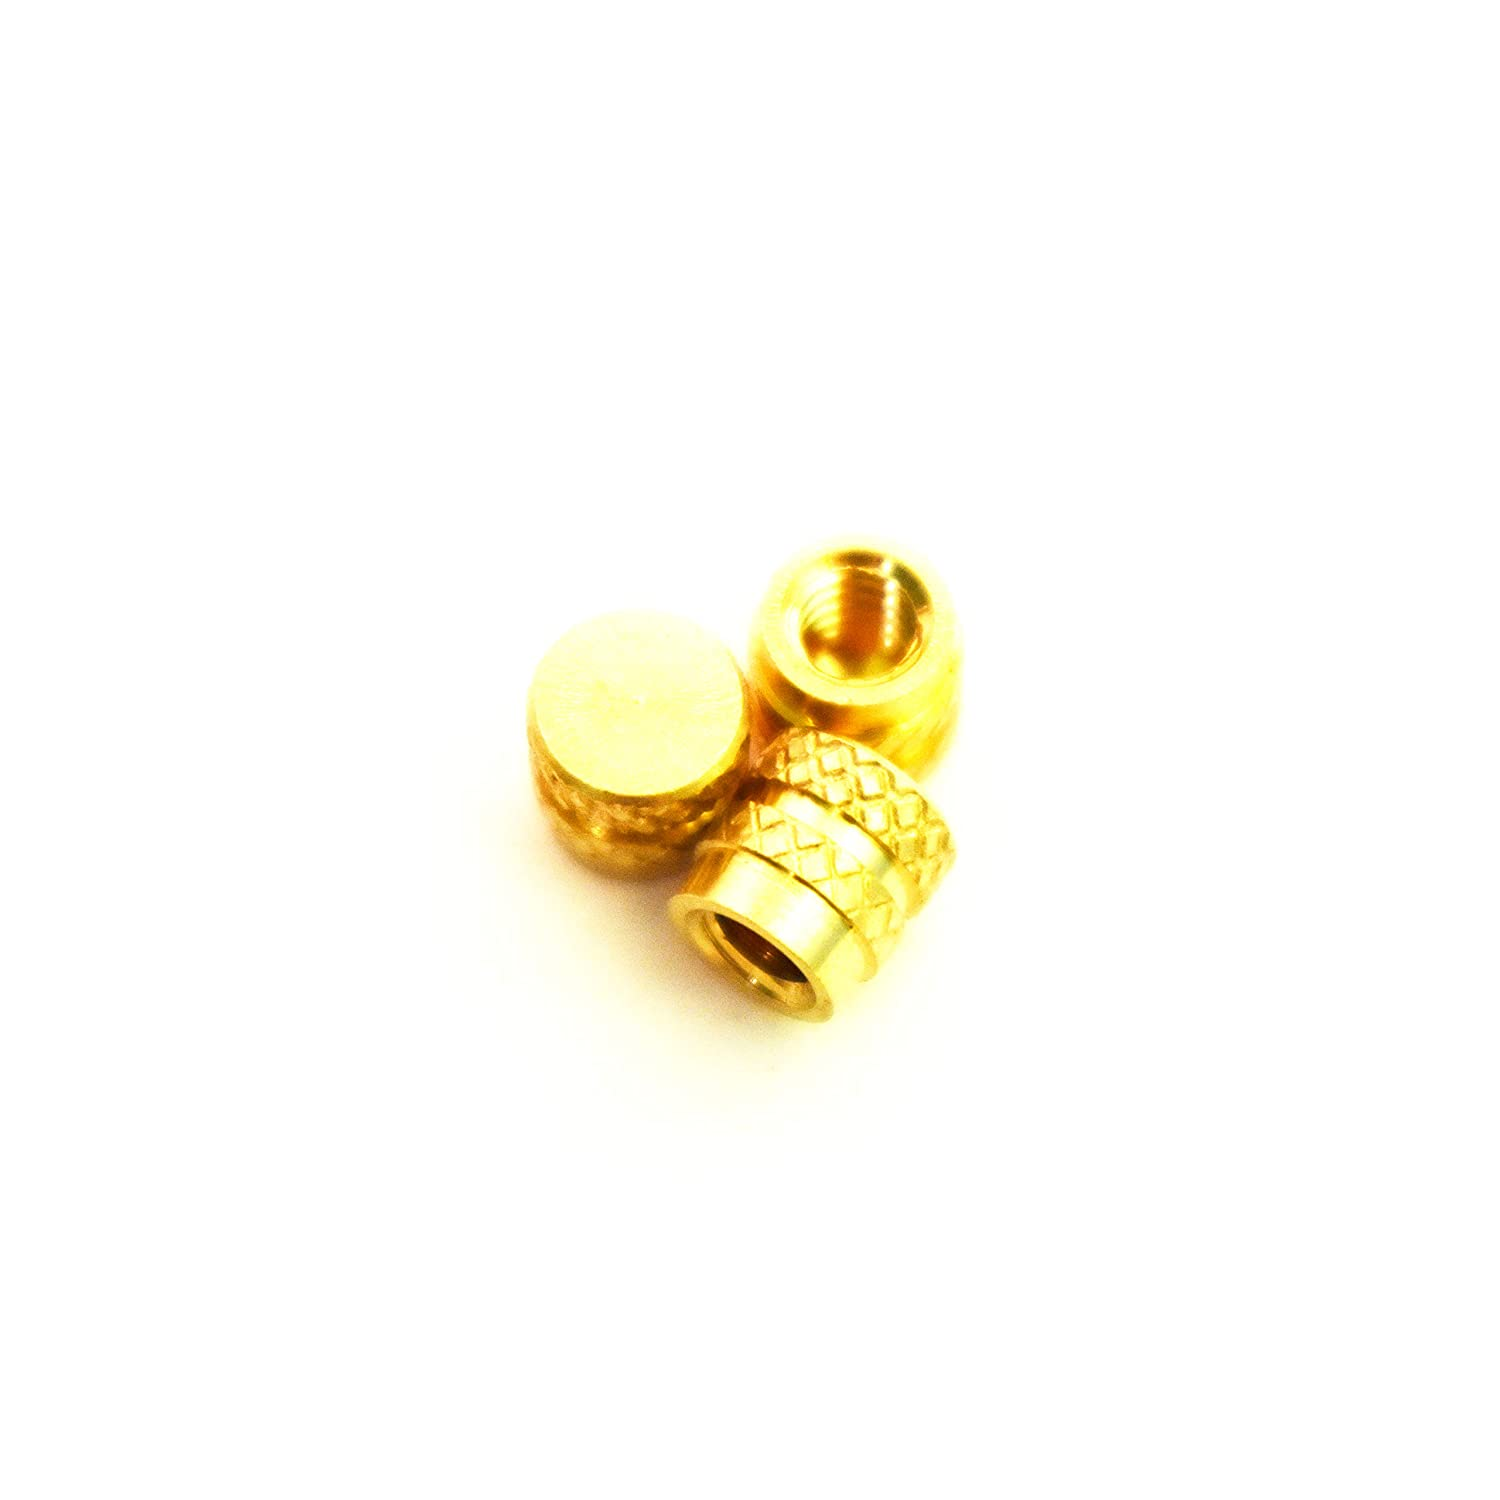 5.7mm OD J/&J Products Heat Sink or Injection Molding Type Blind Insert 5.5 mm Length Female 6-32 Thread 100 pcs J /& J Products 6-32 Brass Insert 100pcs